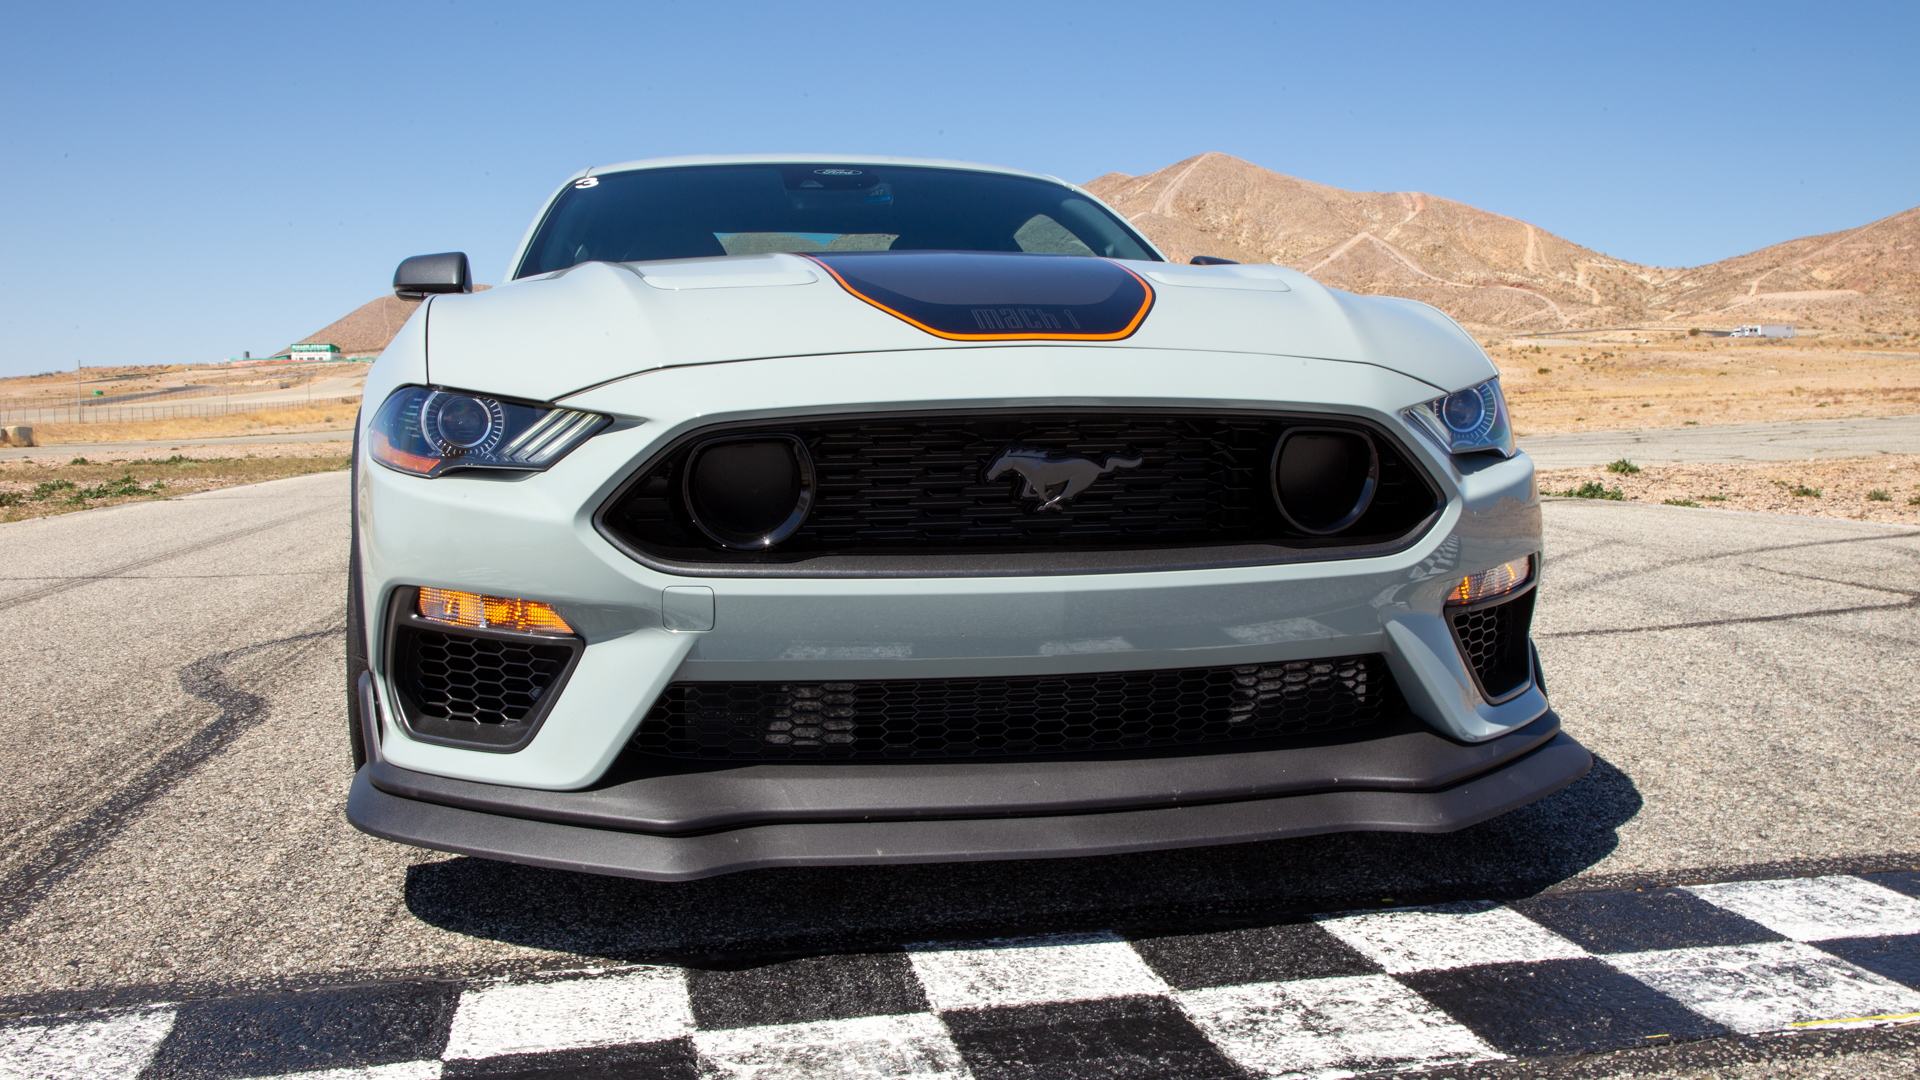 2021 Ford Mustang. Mach 1